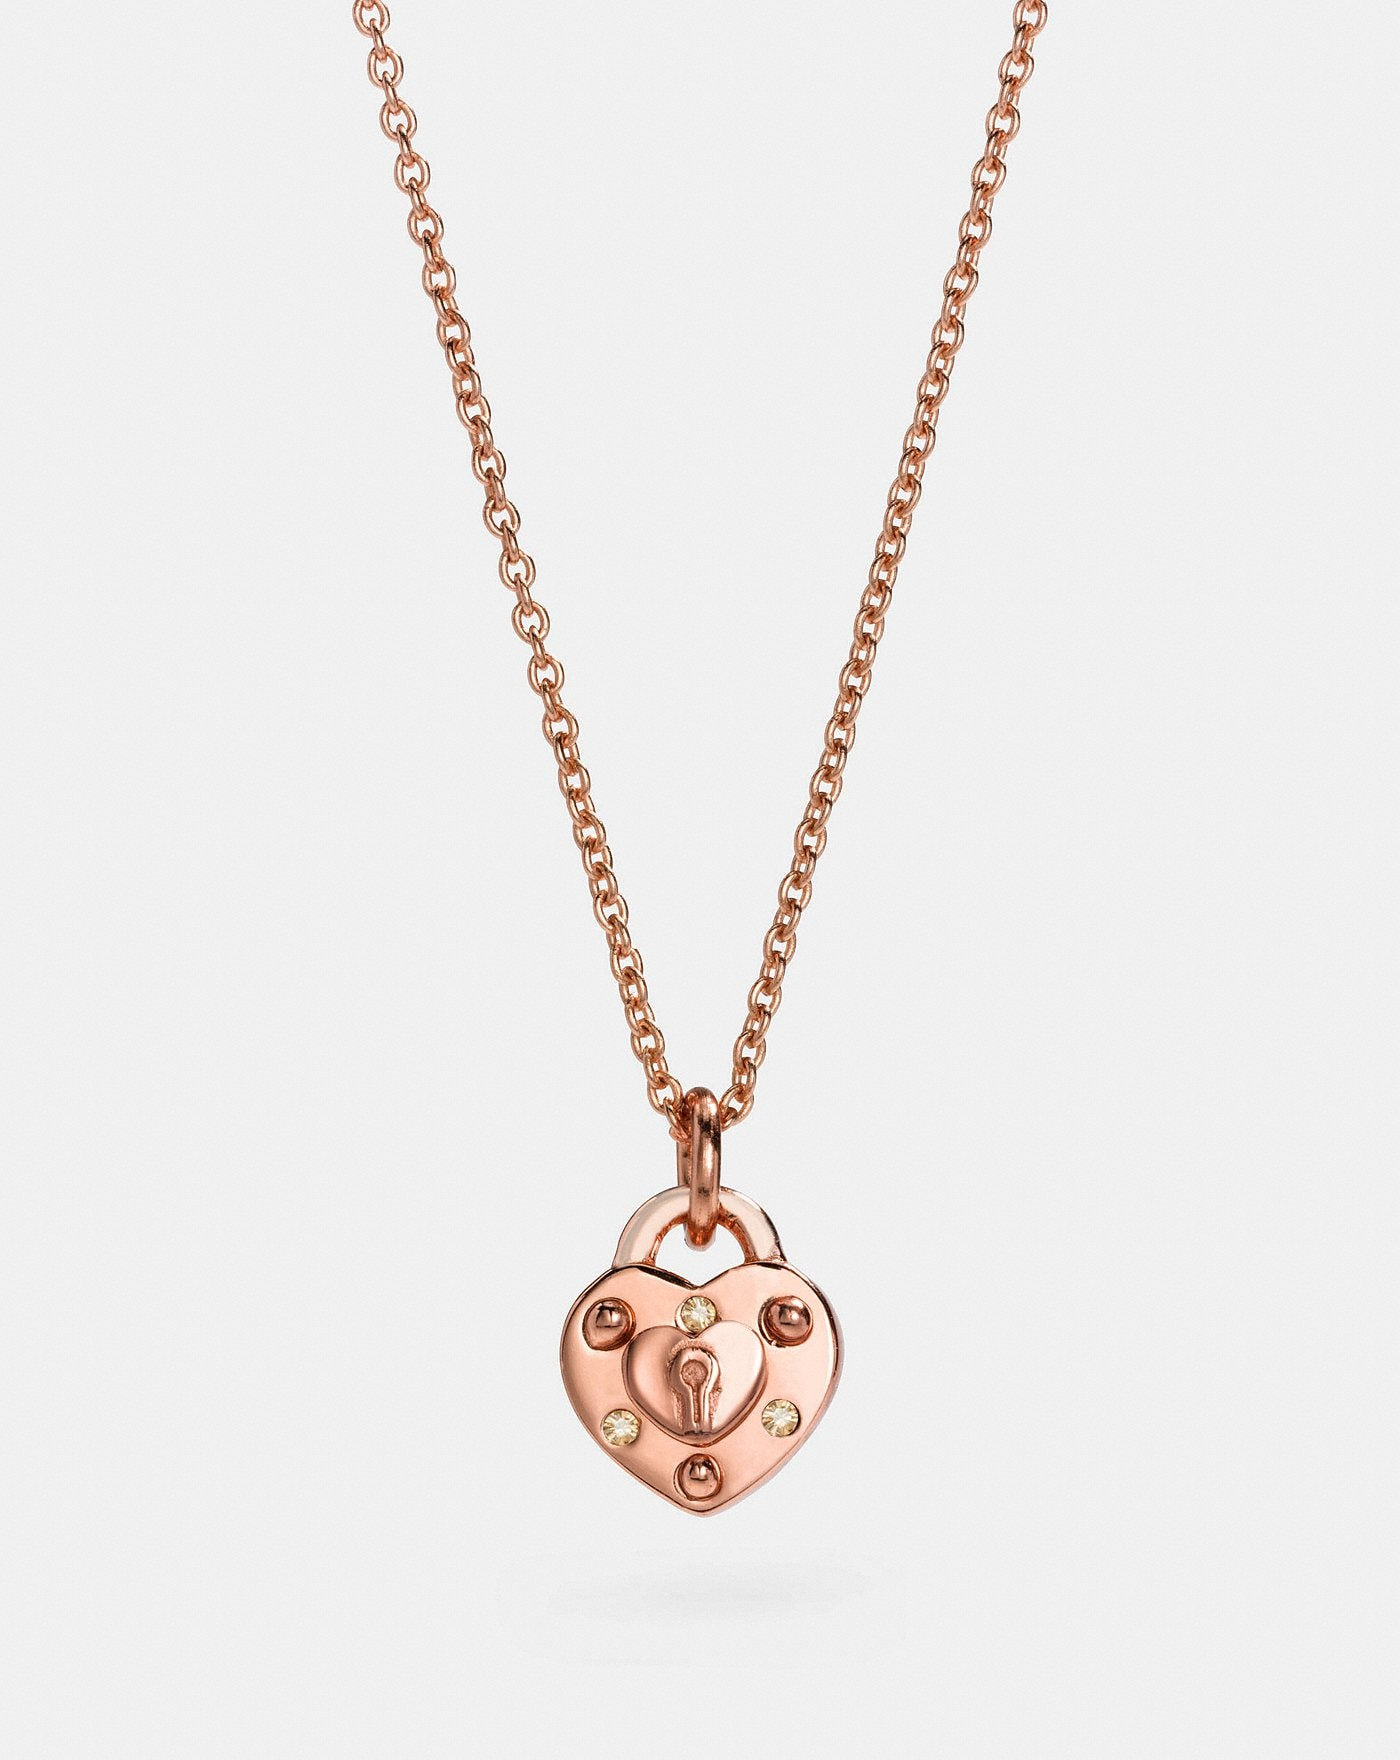 frannieb products mini fine jewelry heart necklace